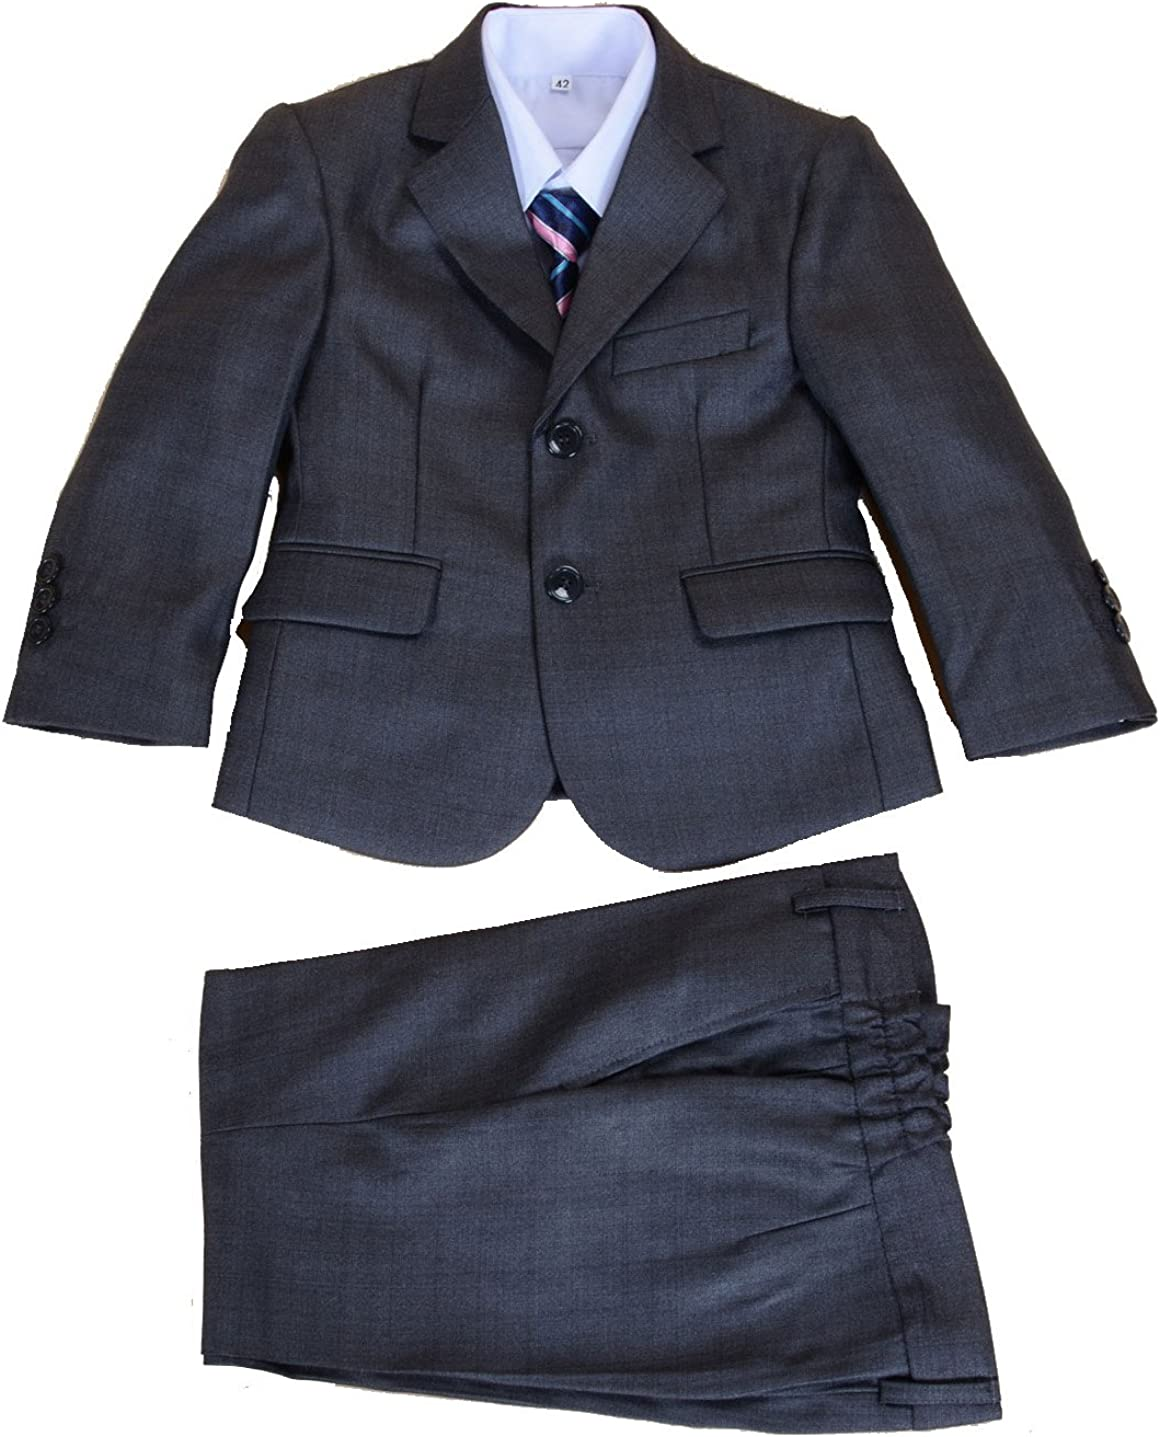 Cinda Clothing Big Boys 5 Piece Suits Wedding Page Party Prom